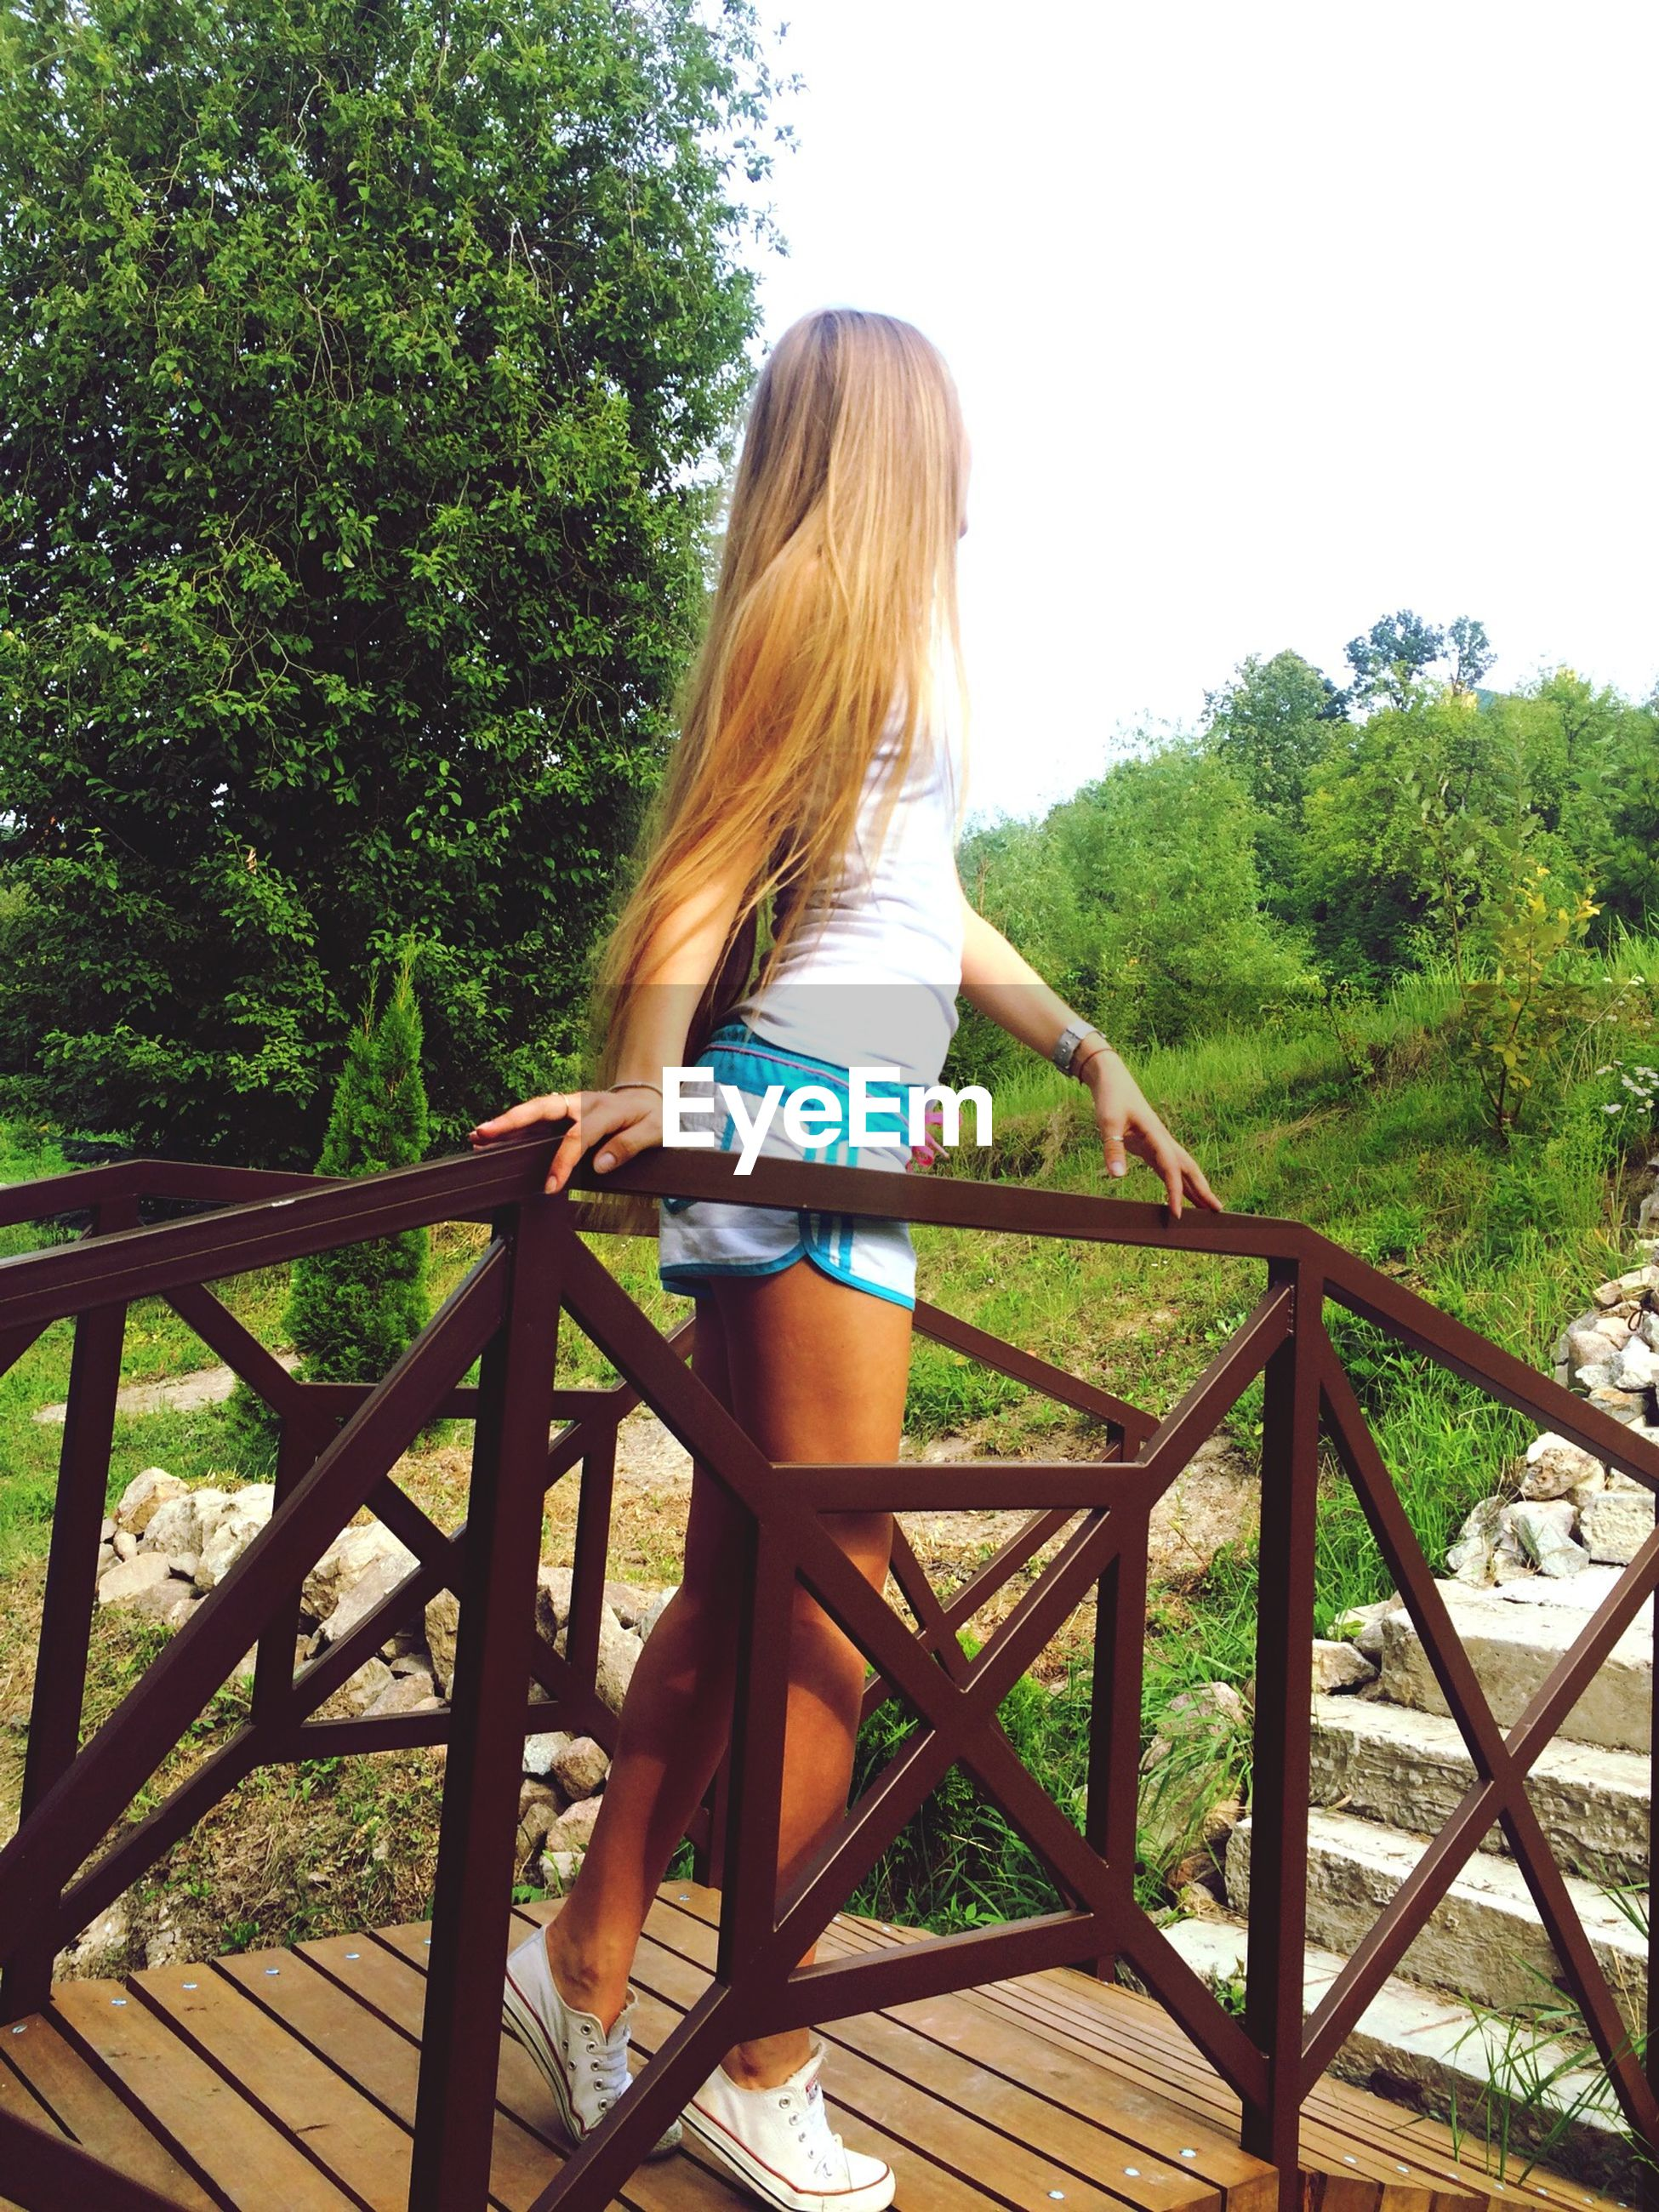 lifestyles, long hair, railing, leisure activity, casual clothing, person, young women, young adult, full length, standing, tree, blond hair, rear view, three quarter length, side view, day, waist up